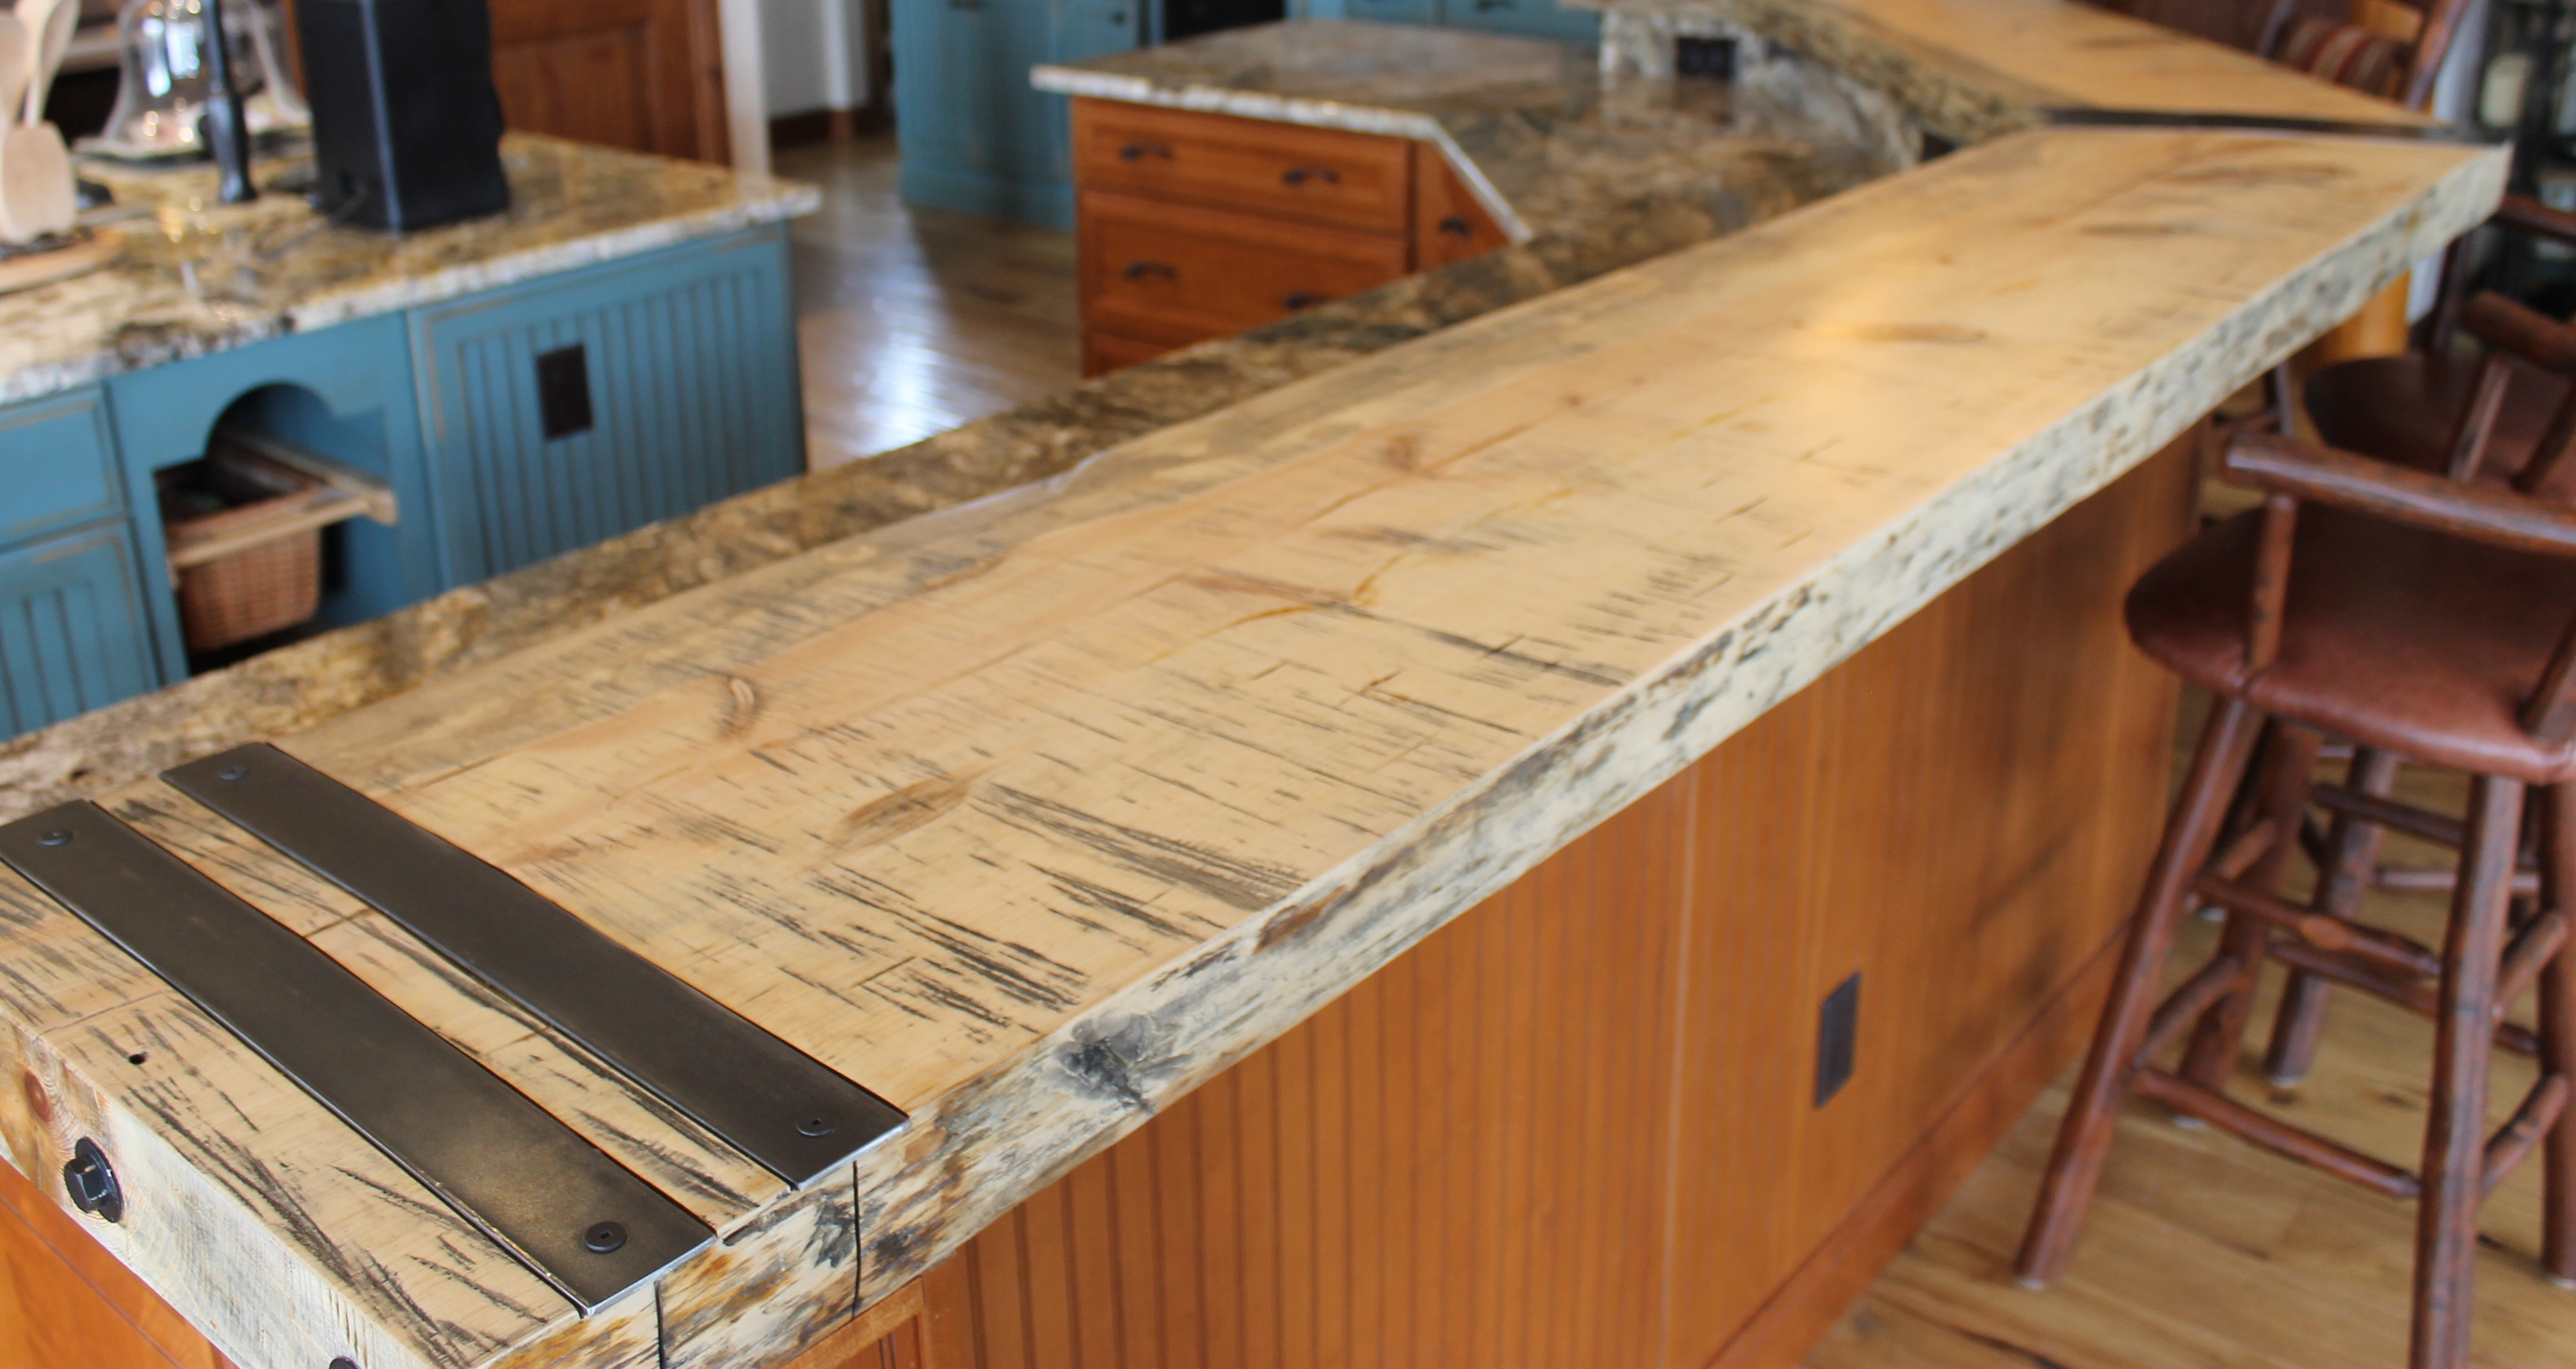 Countertop from reclaimed burned trees (credit: Jennicca Mabe)